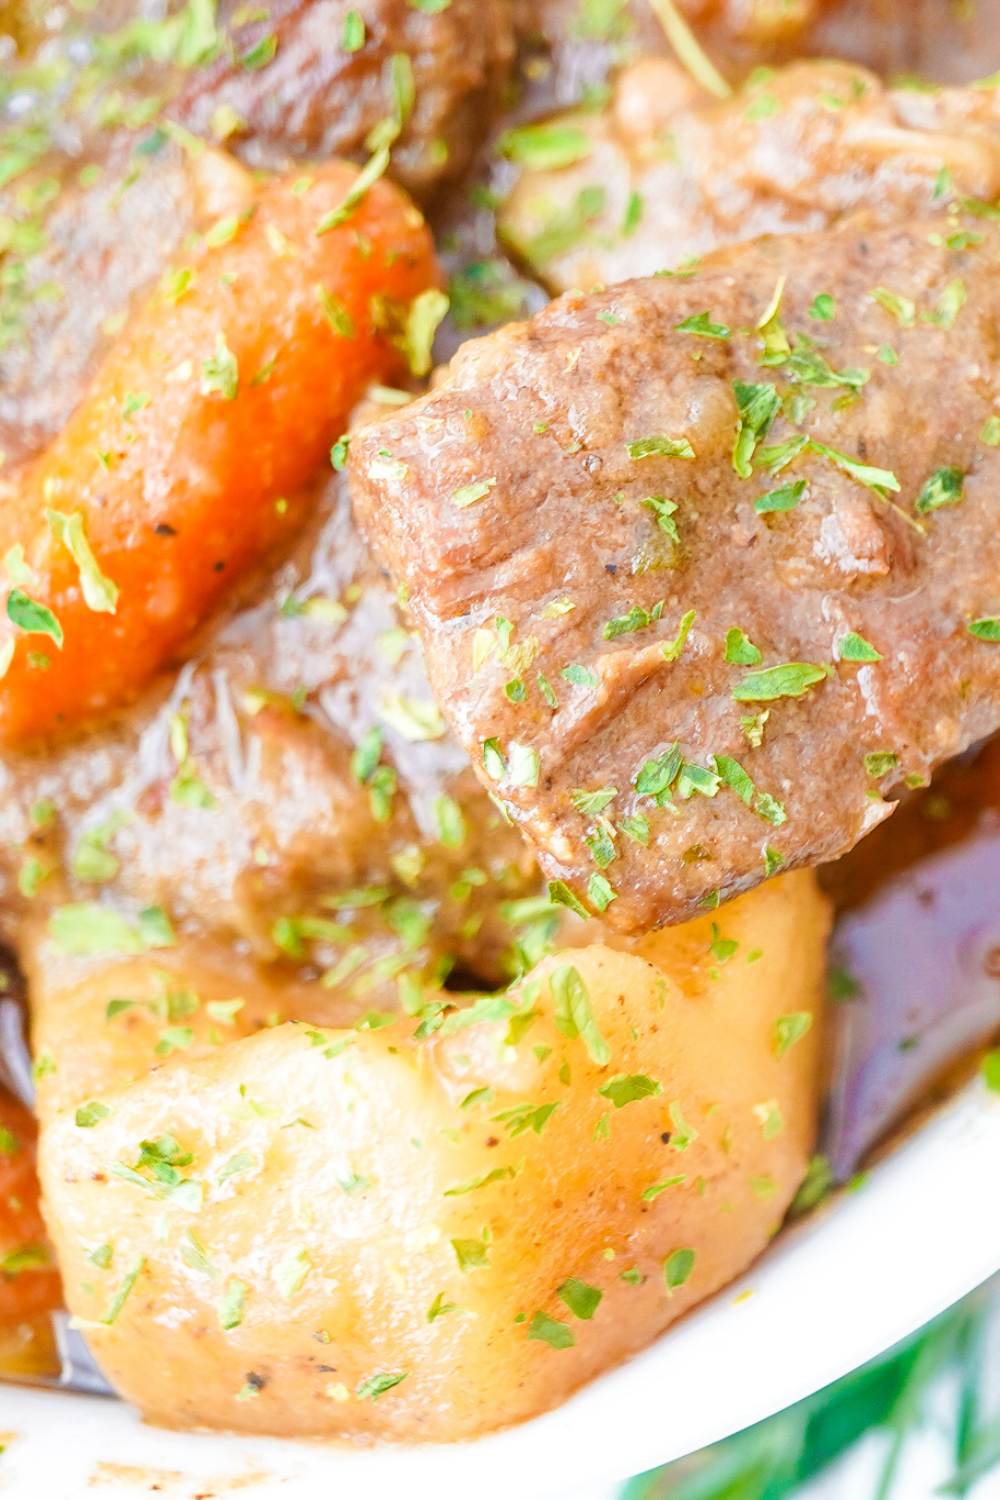 The best-slow-cooked pot roast